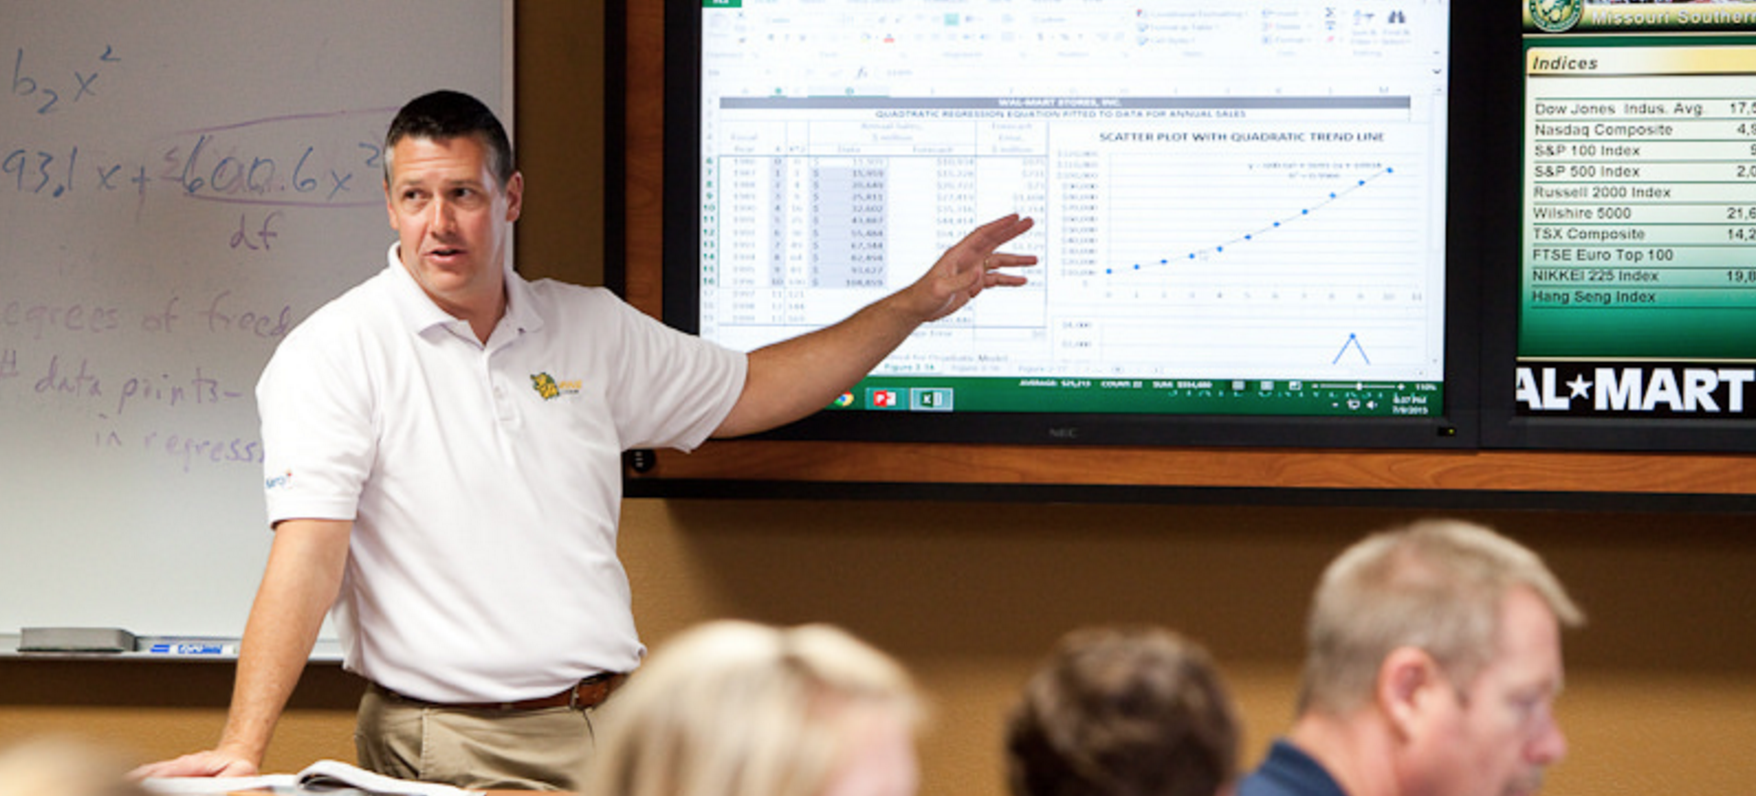 Portfolio management class gives students real-world experience